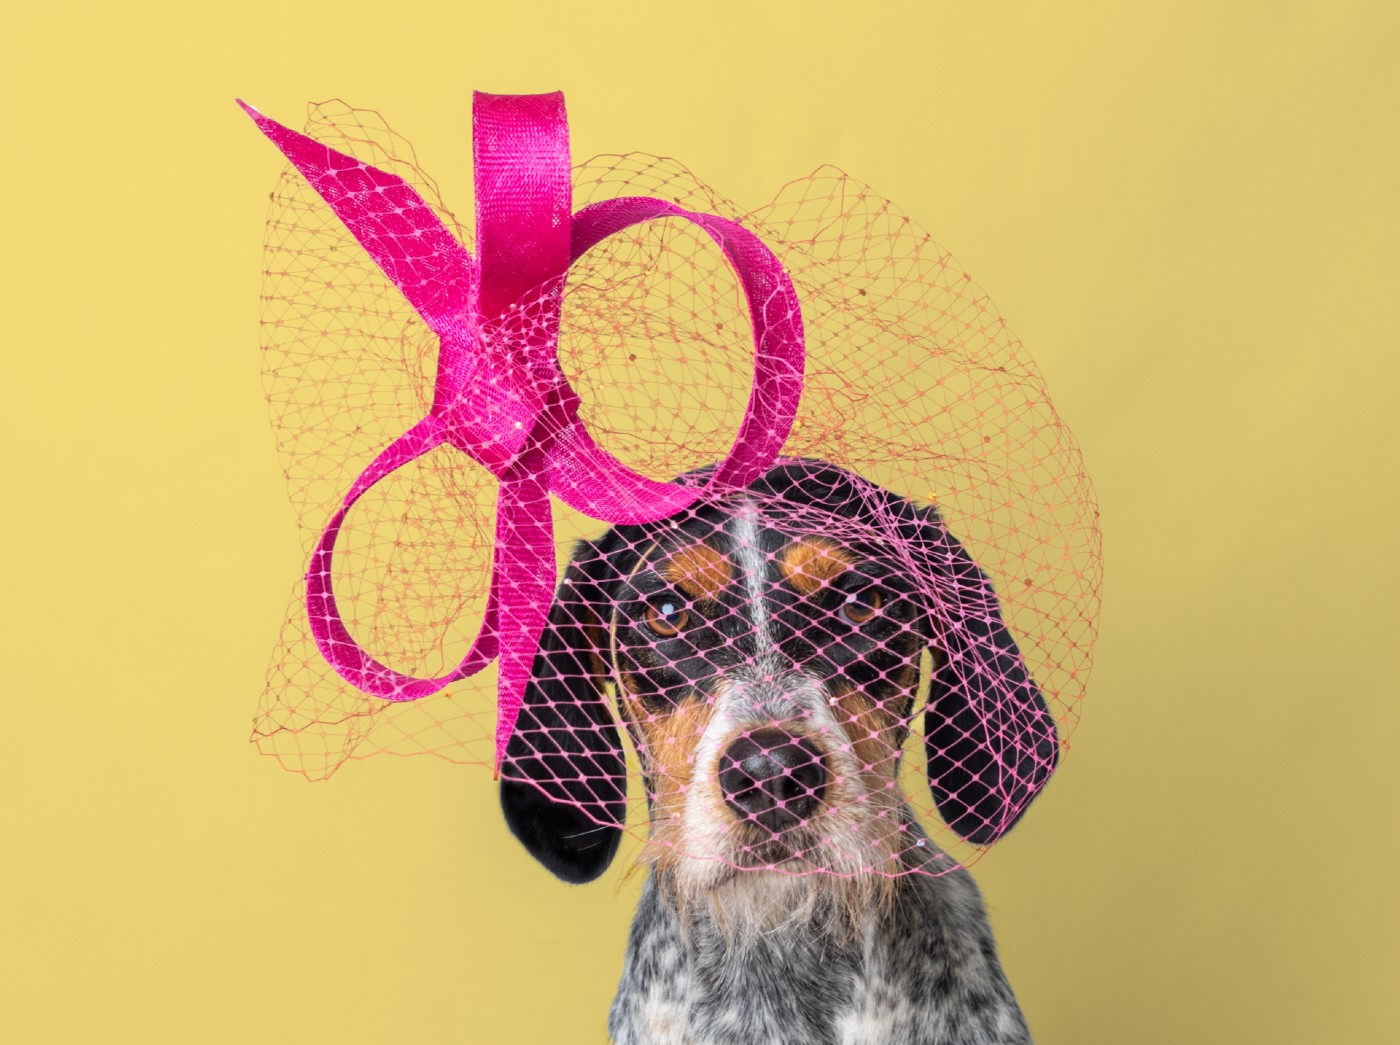 Hats Off: Celeb Milliner for Meghan Markle and Lady Gaga Creates Adorable Rescue Dog Calendar